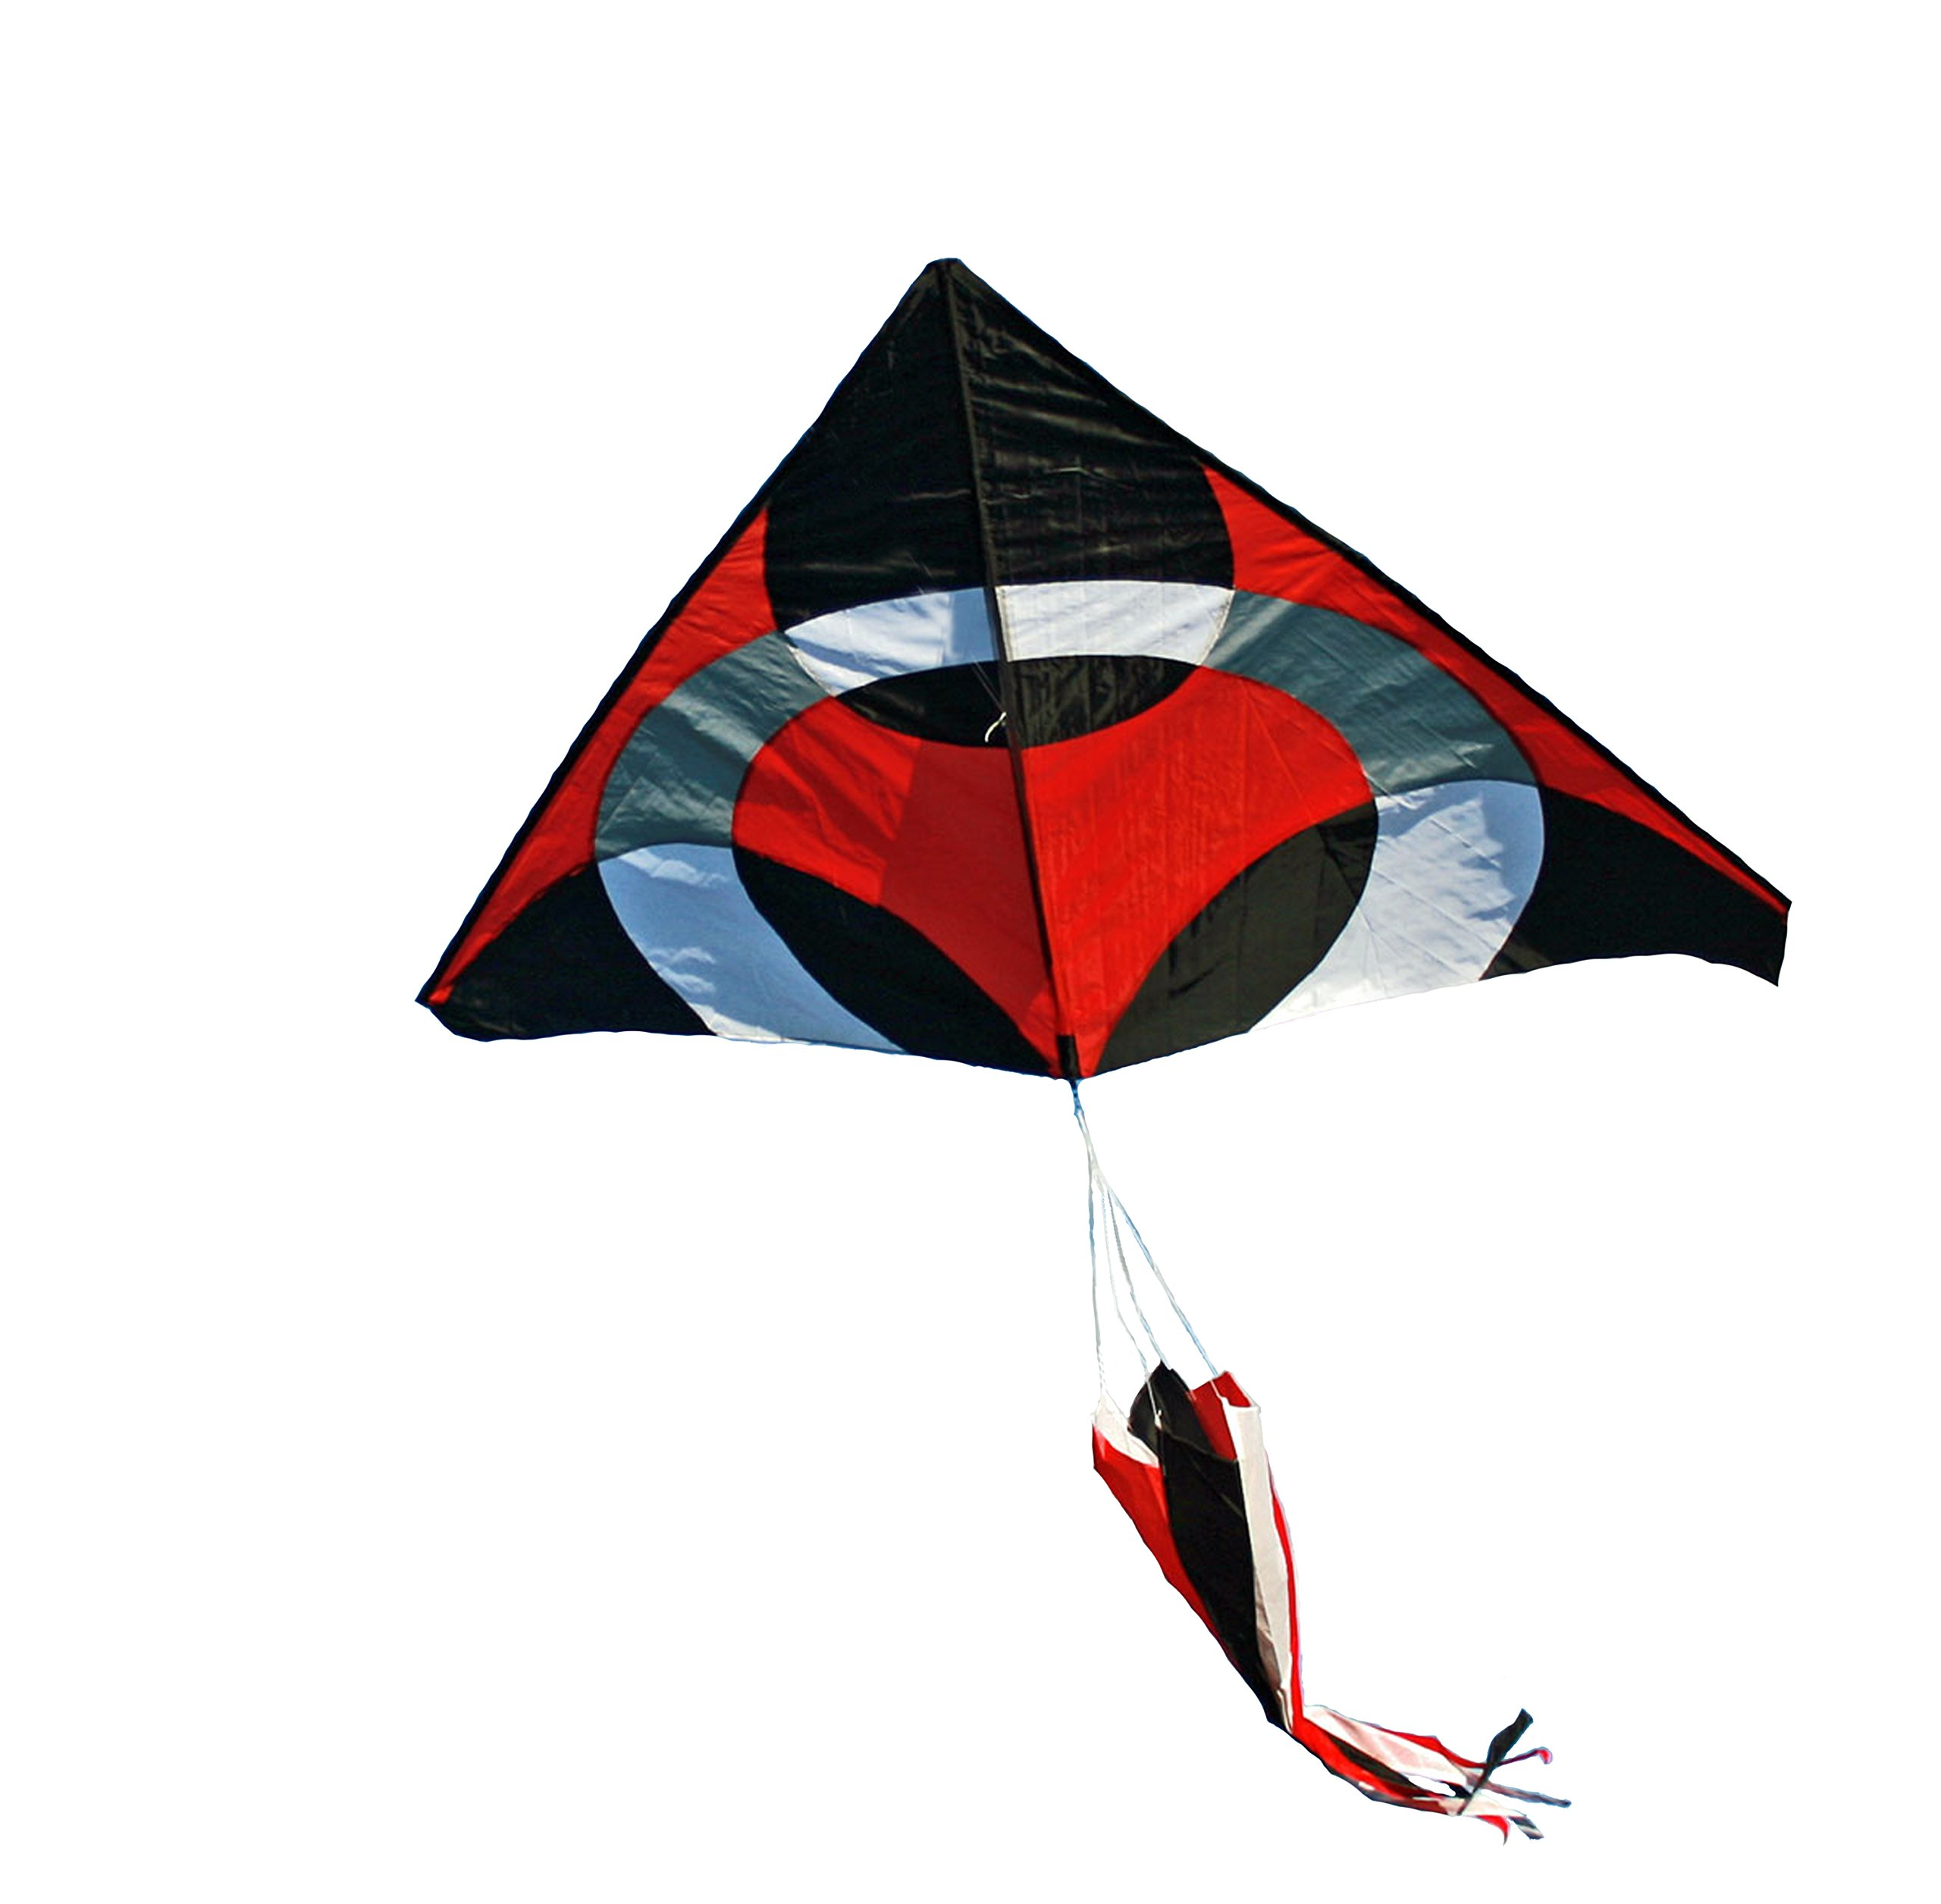 Weifang New Sky Kites Giant delta Ring iKite Delta Shape Premium Large Kite (Red) 6FT Wide